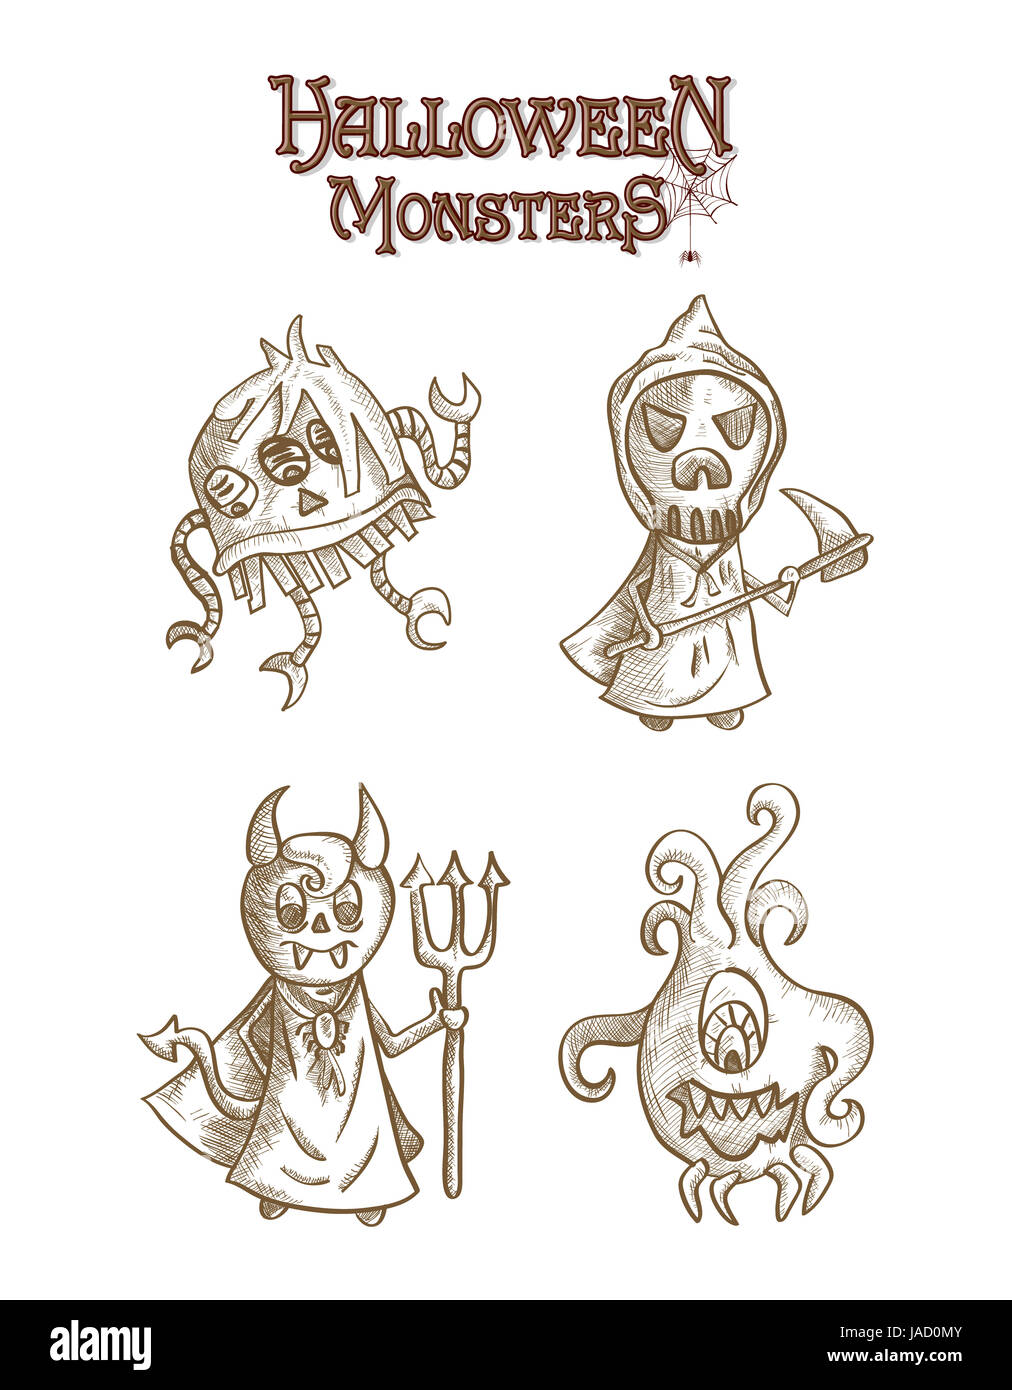 Spooky Halloween Monstres Créatures Style Croquis Dessins